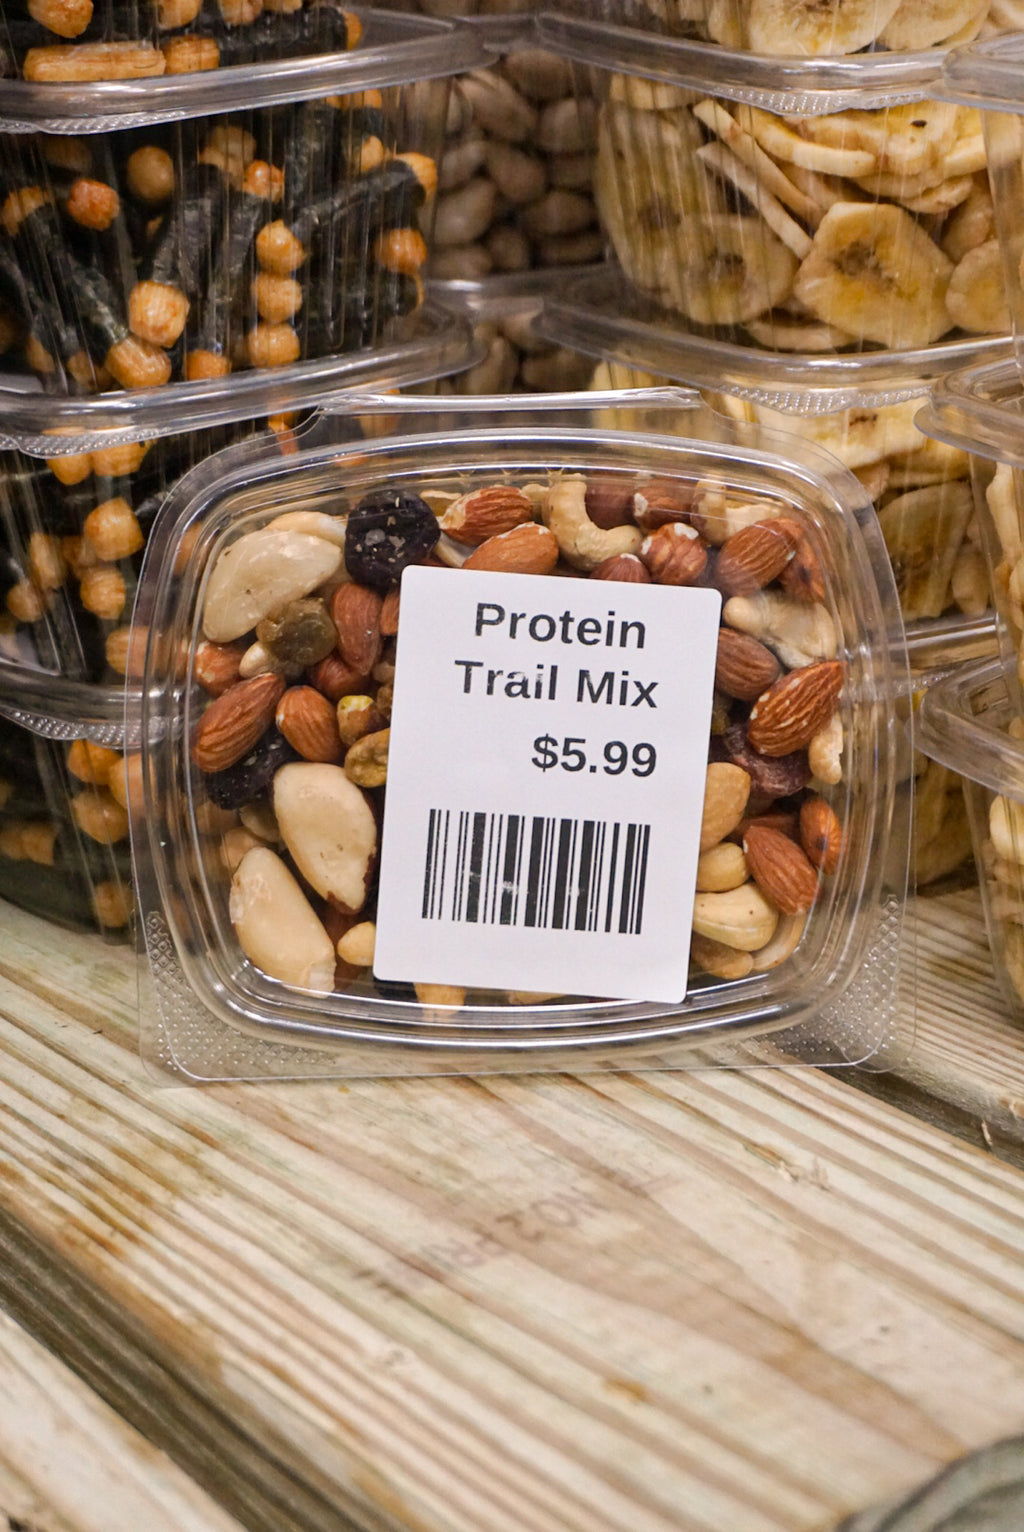 Protein Trail Mix - Delivery